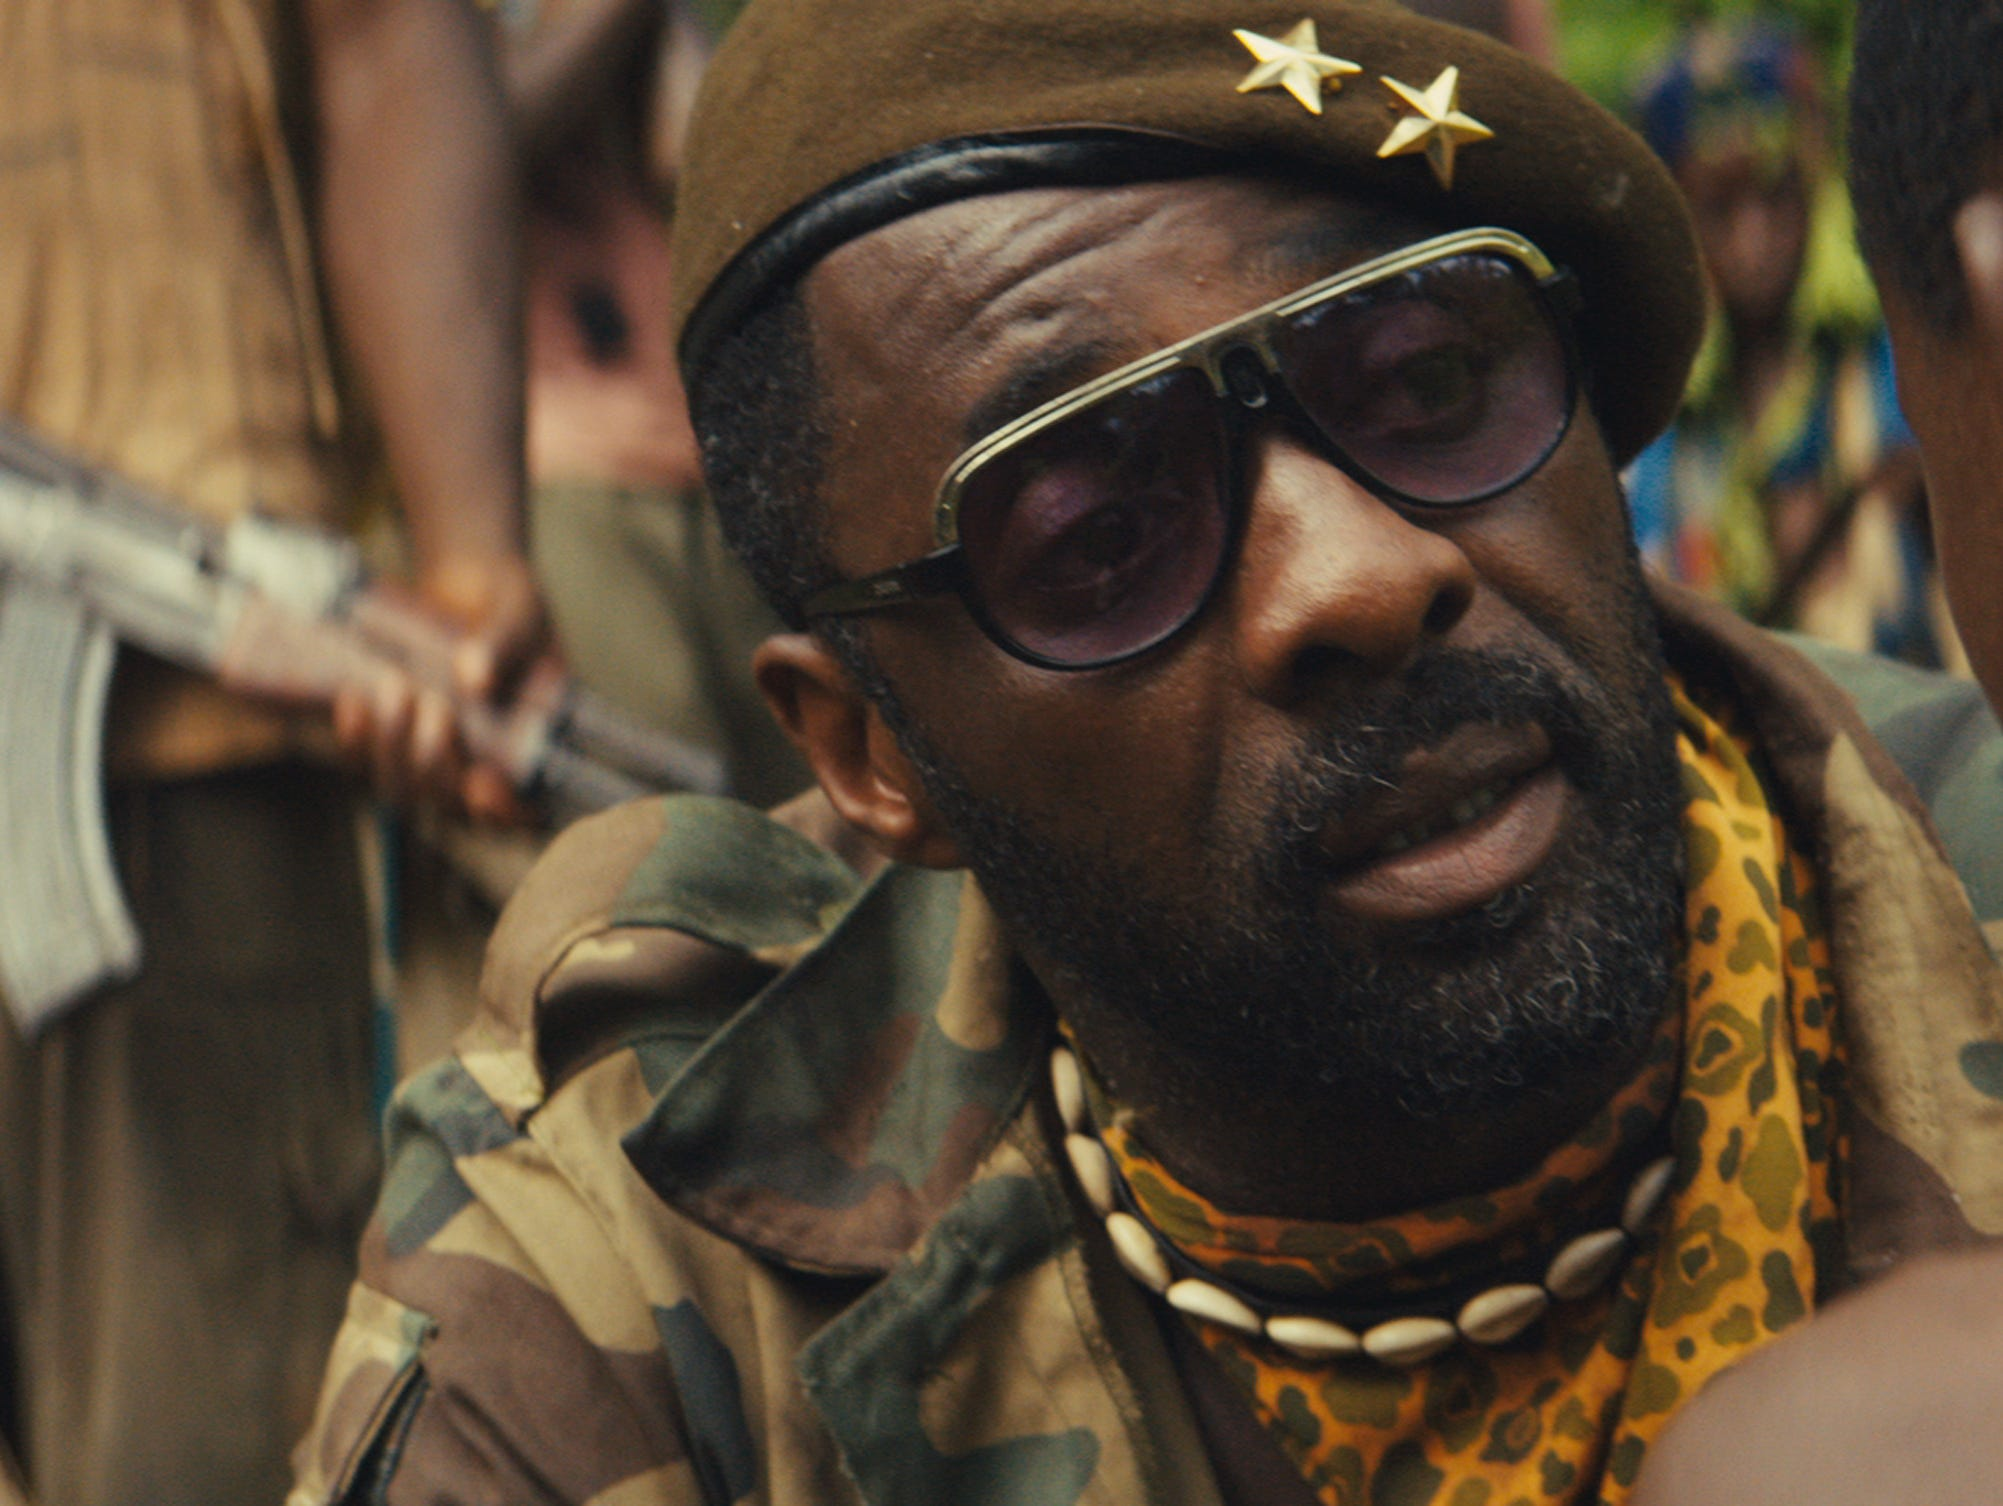 Idris Elba in a scene from the upcoming original Netflix film 'Beasts of No Nation.'